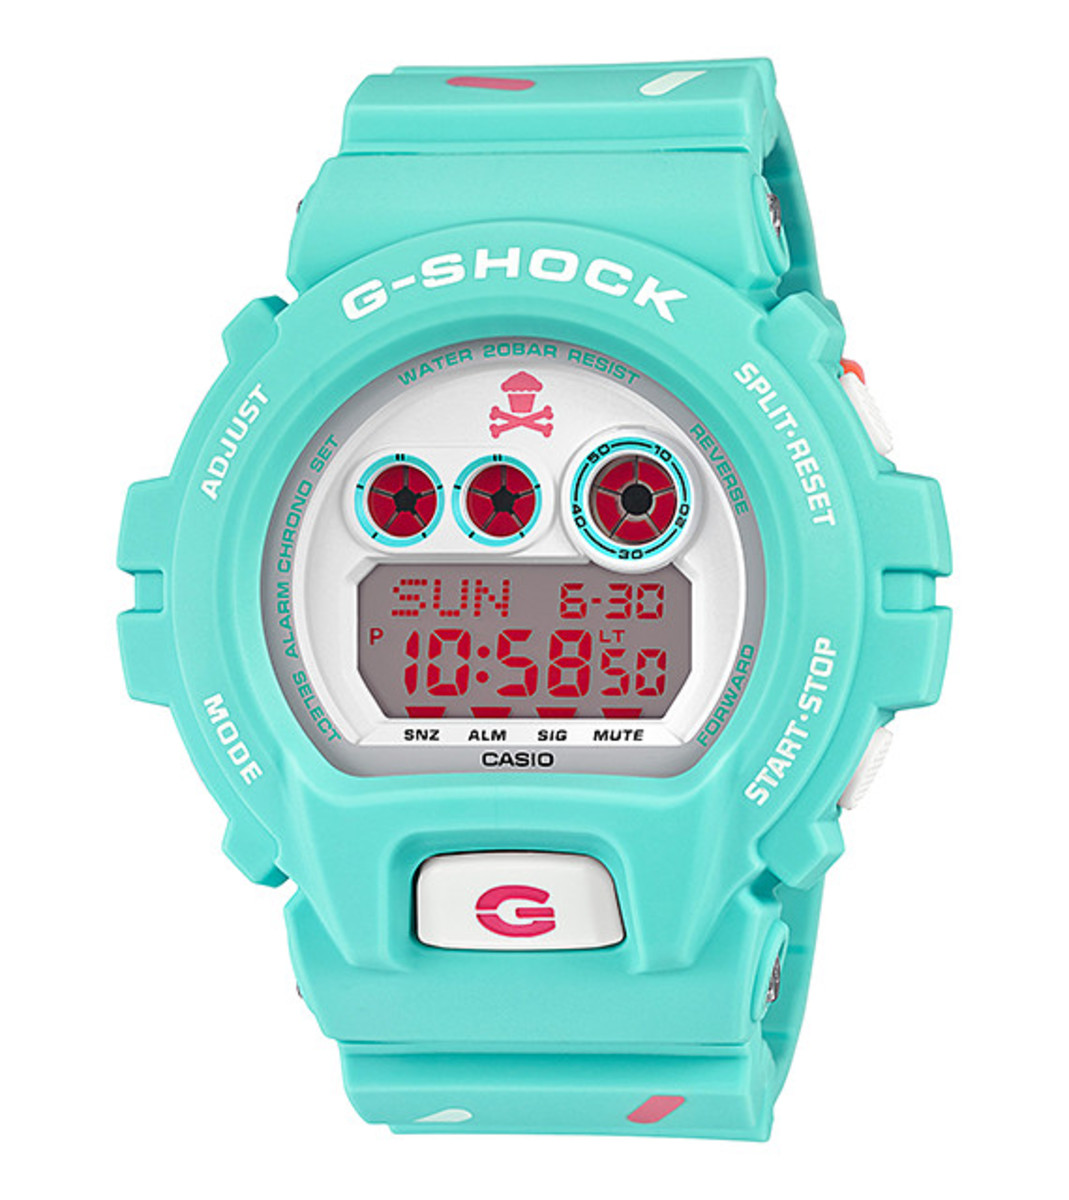 johnny-cupcakes-g-shock-gd-x6900-another-look-01